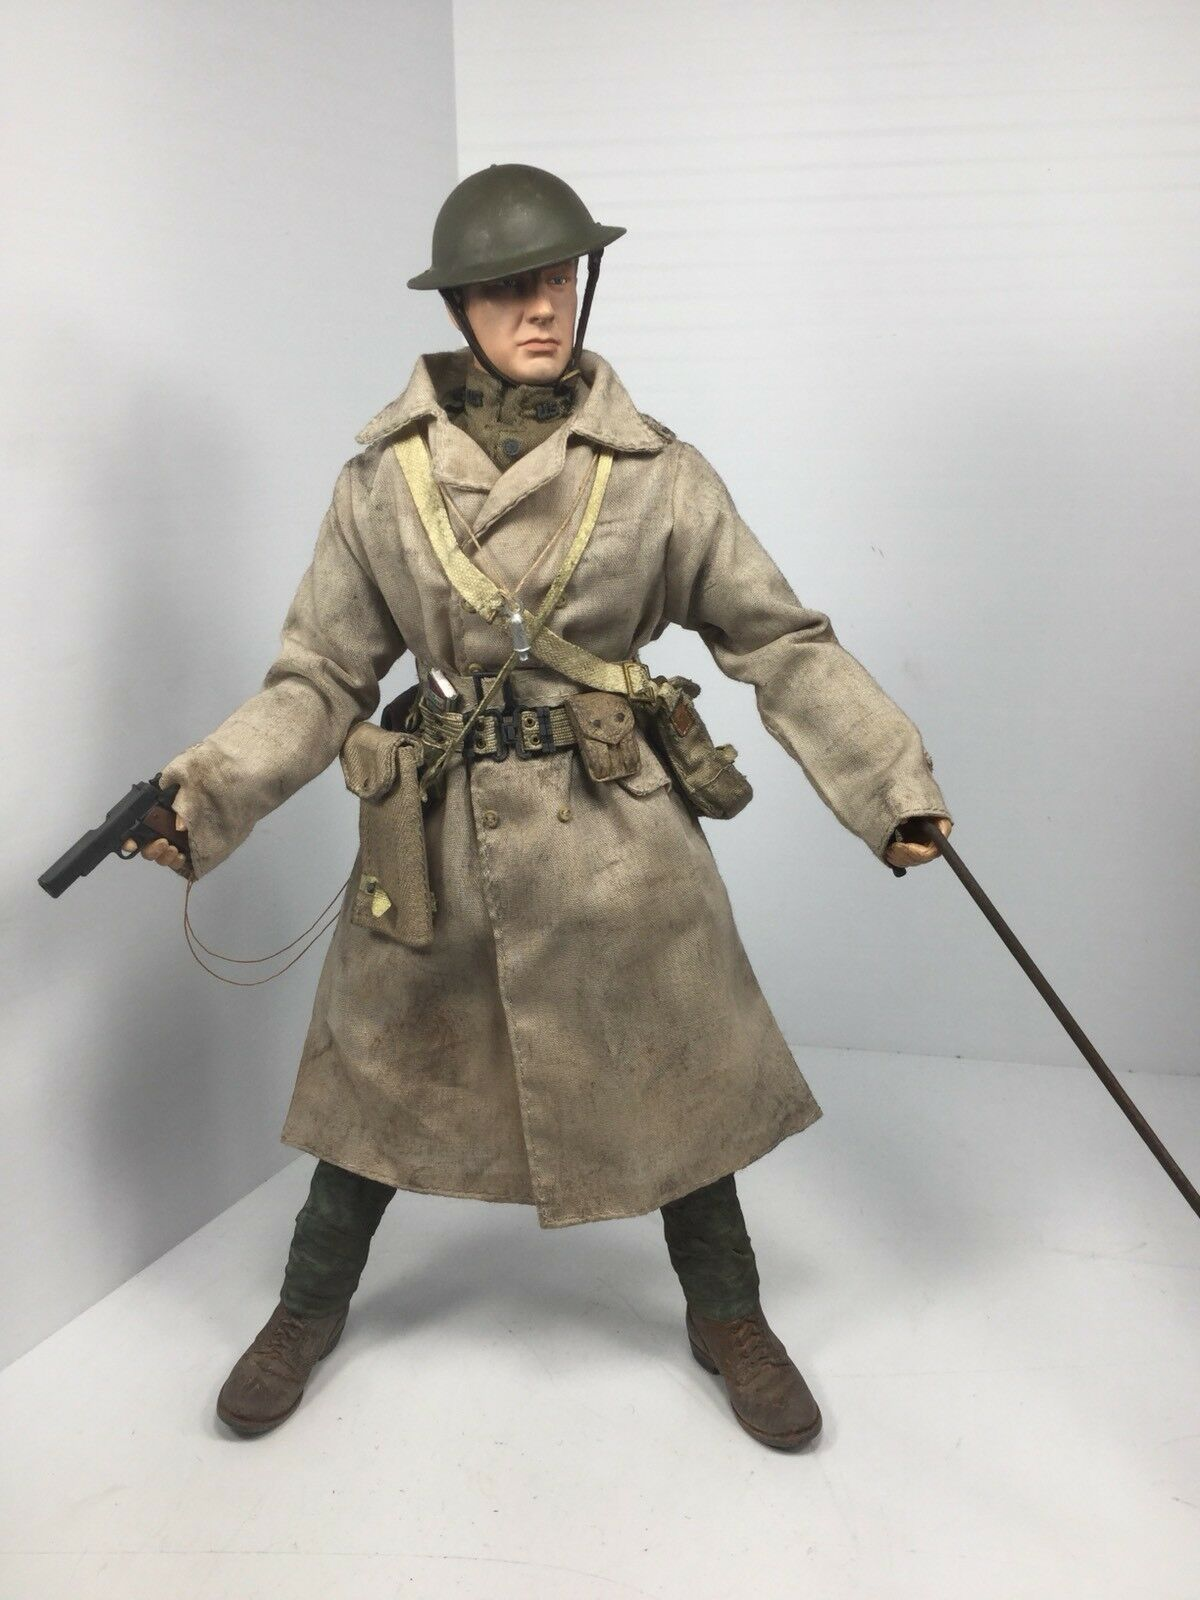 1 6 DRAGON WW1 US A.E.F LT COLT 1911 + CANE & MAP TRENCH SIDESHOW DID BBI 21st